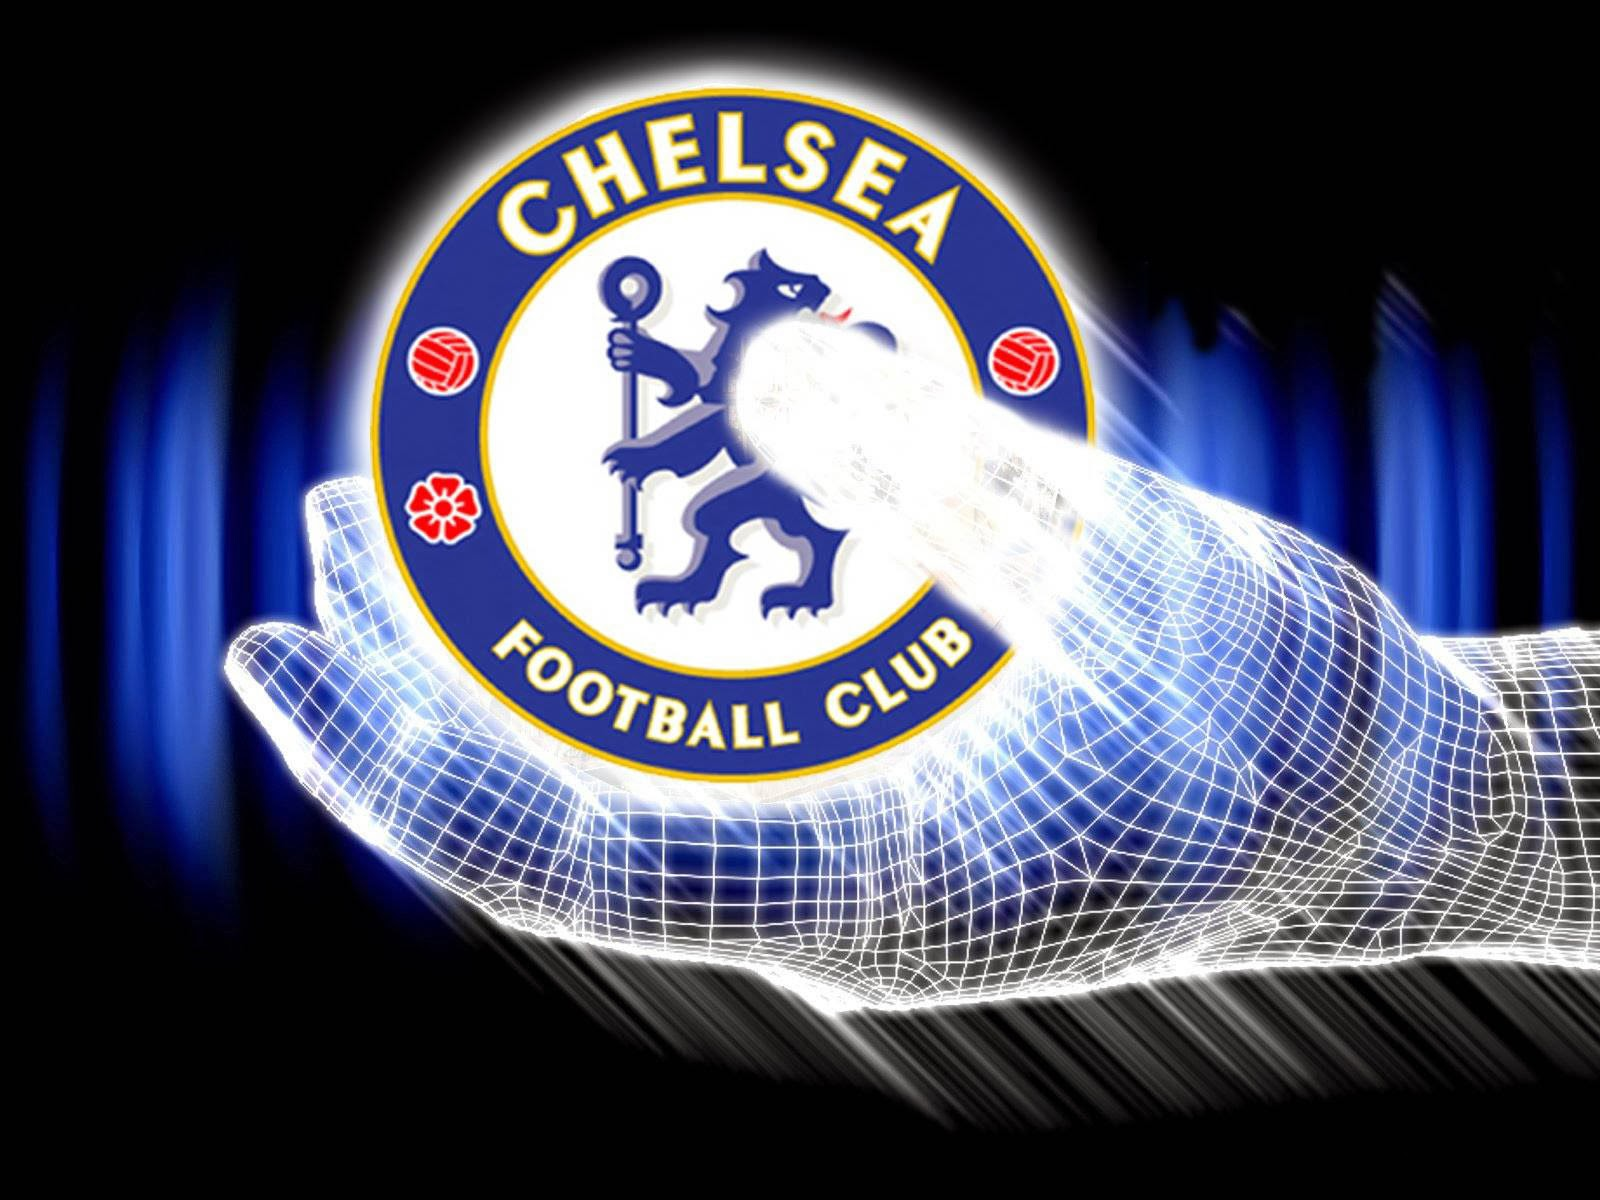 chelsea fc wallpapers for pc - photo #17